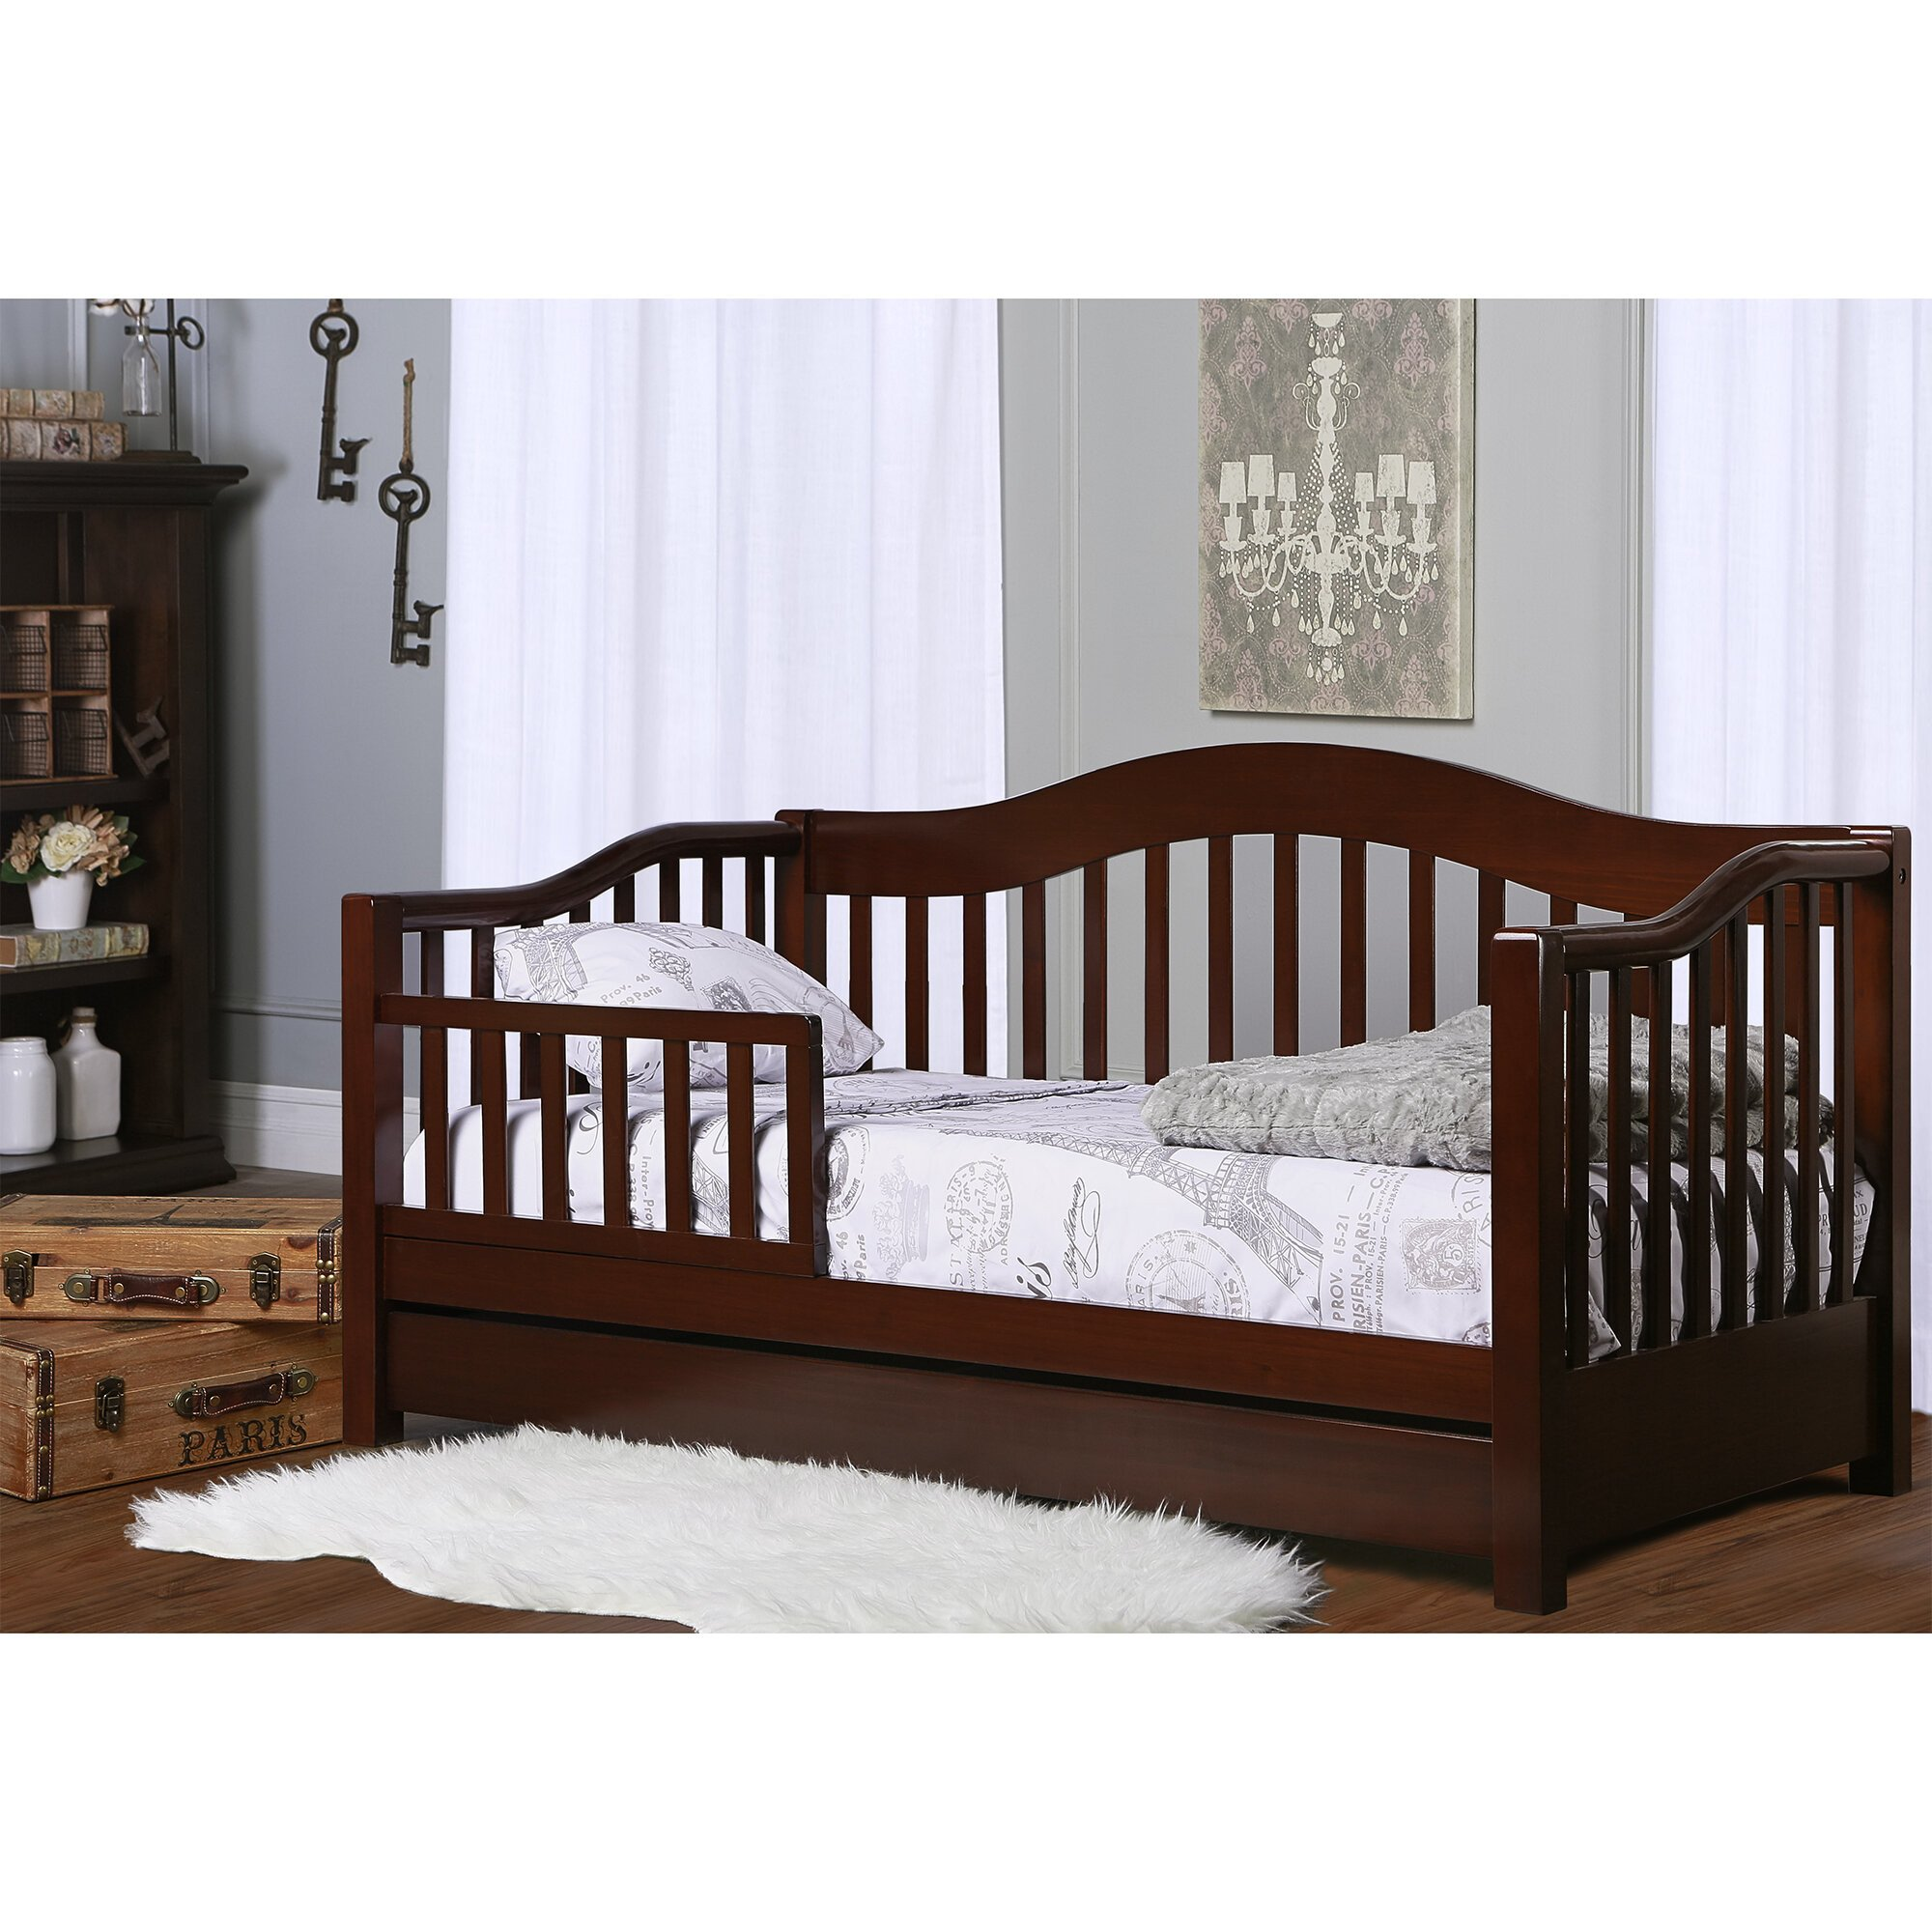 Toddlers Bedroom Furniture Set Lovely Clarkson toddler Bed